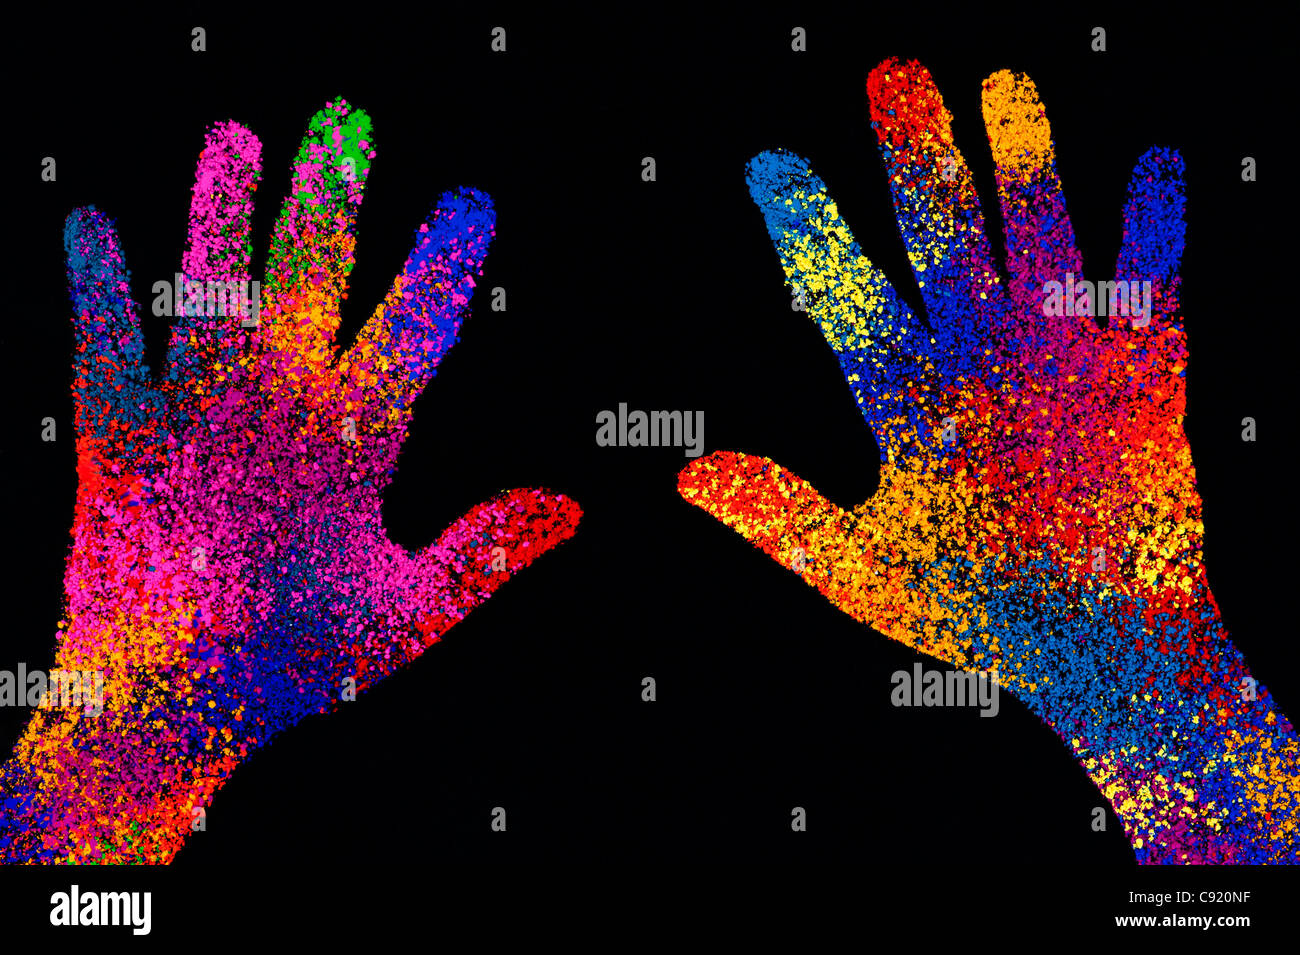 Childs multicoloured hand print on black background - Stock Image